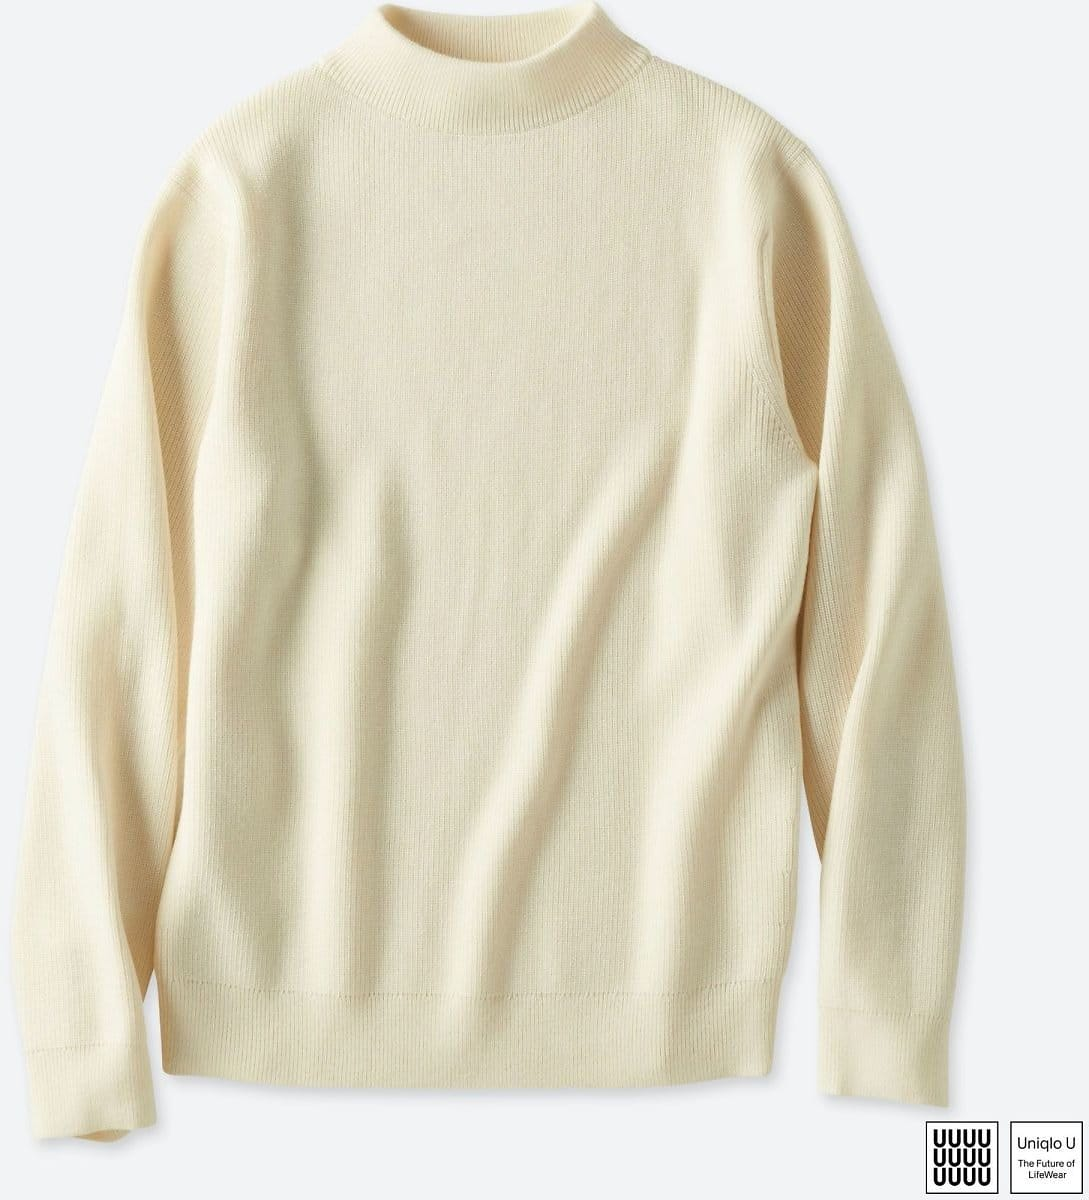 a8705e9362 Men U Merino-Blend High Neck Long-Sleeve Sweater  19.90 - Slickdeals.net